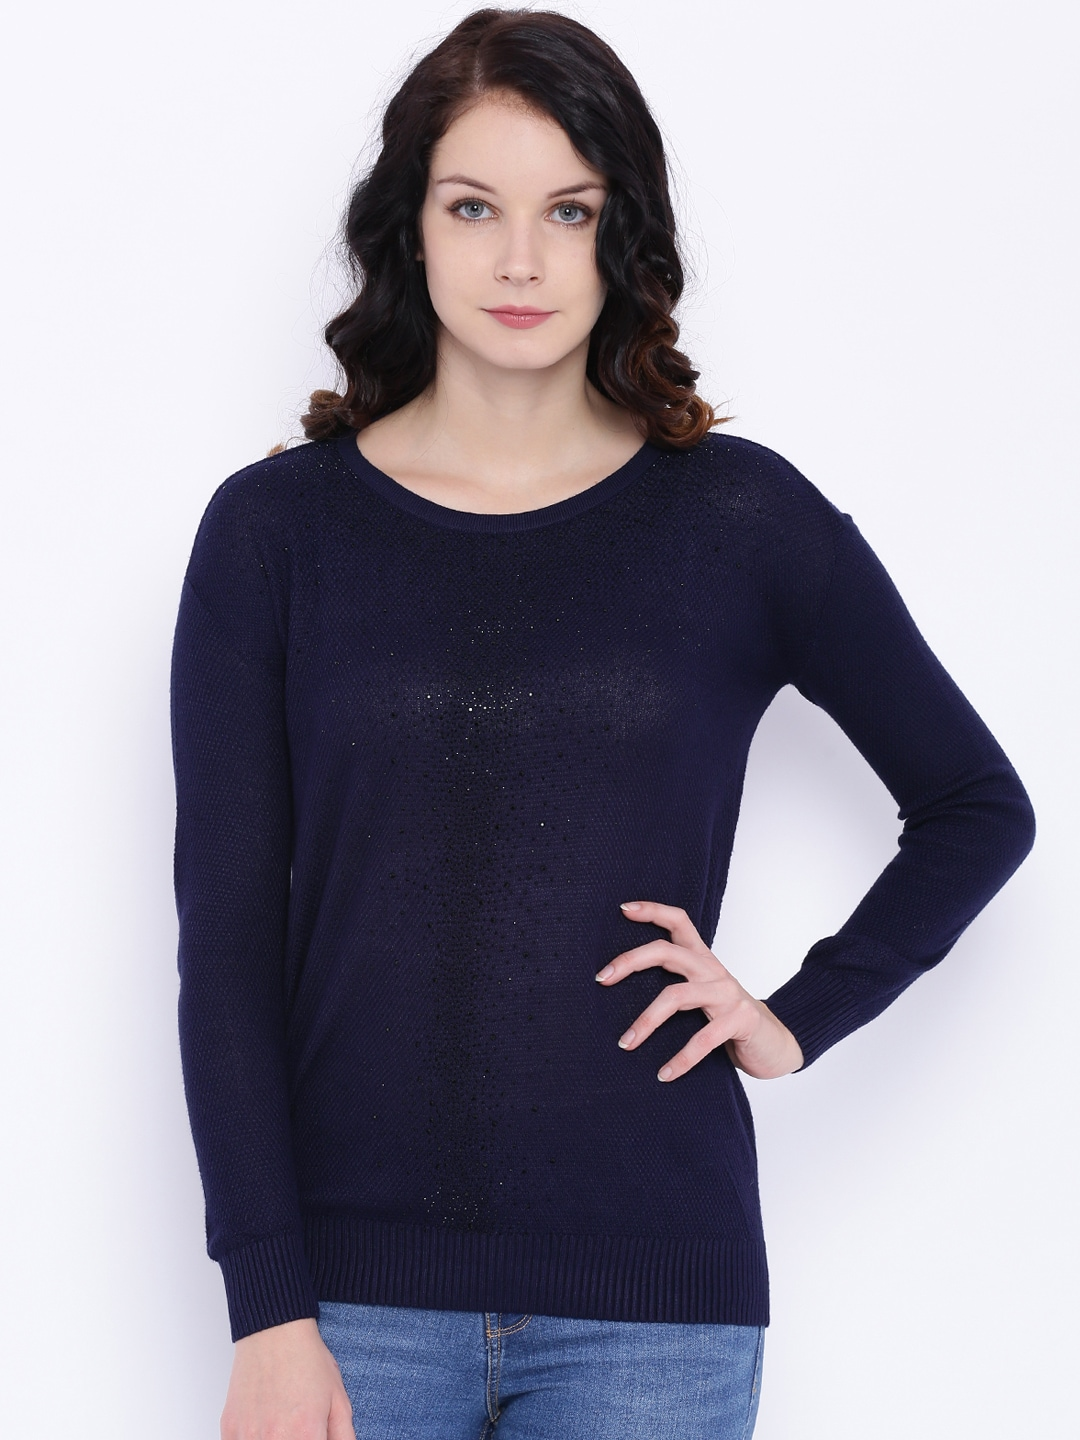 Deal Jeans Women Navy Blue Embellished Top